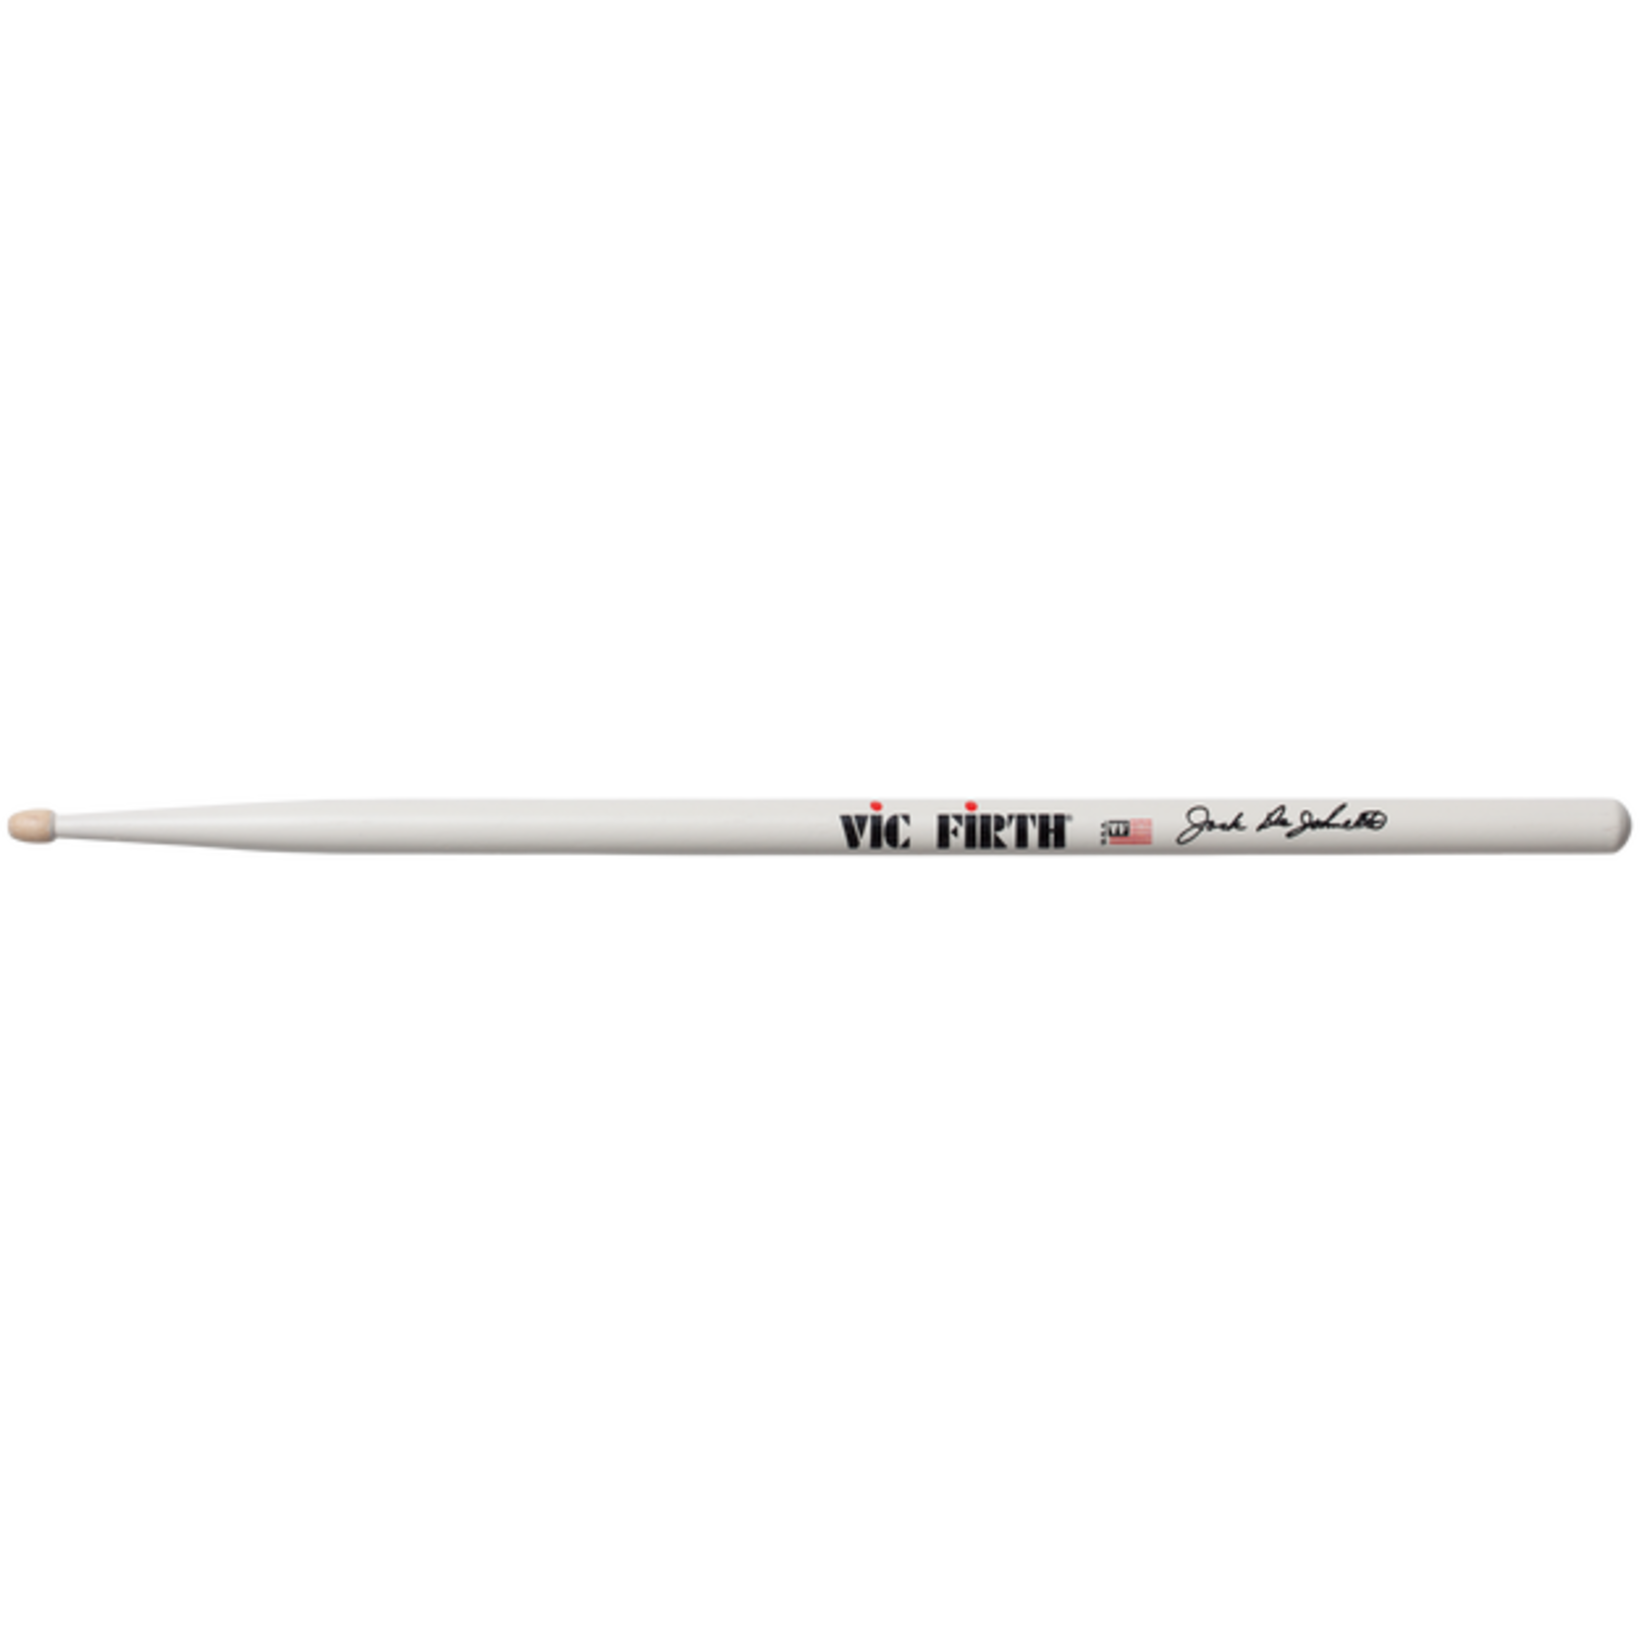 Vic Firth Vic Firth Signature Series -- Jack DeJohnette